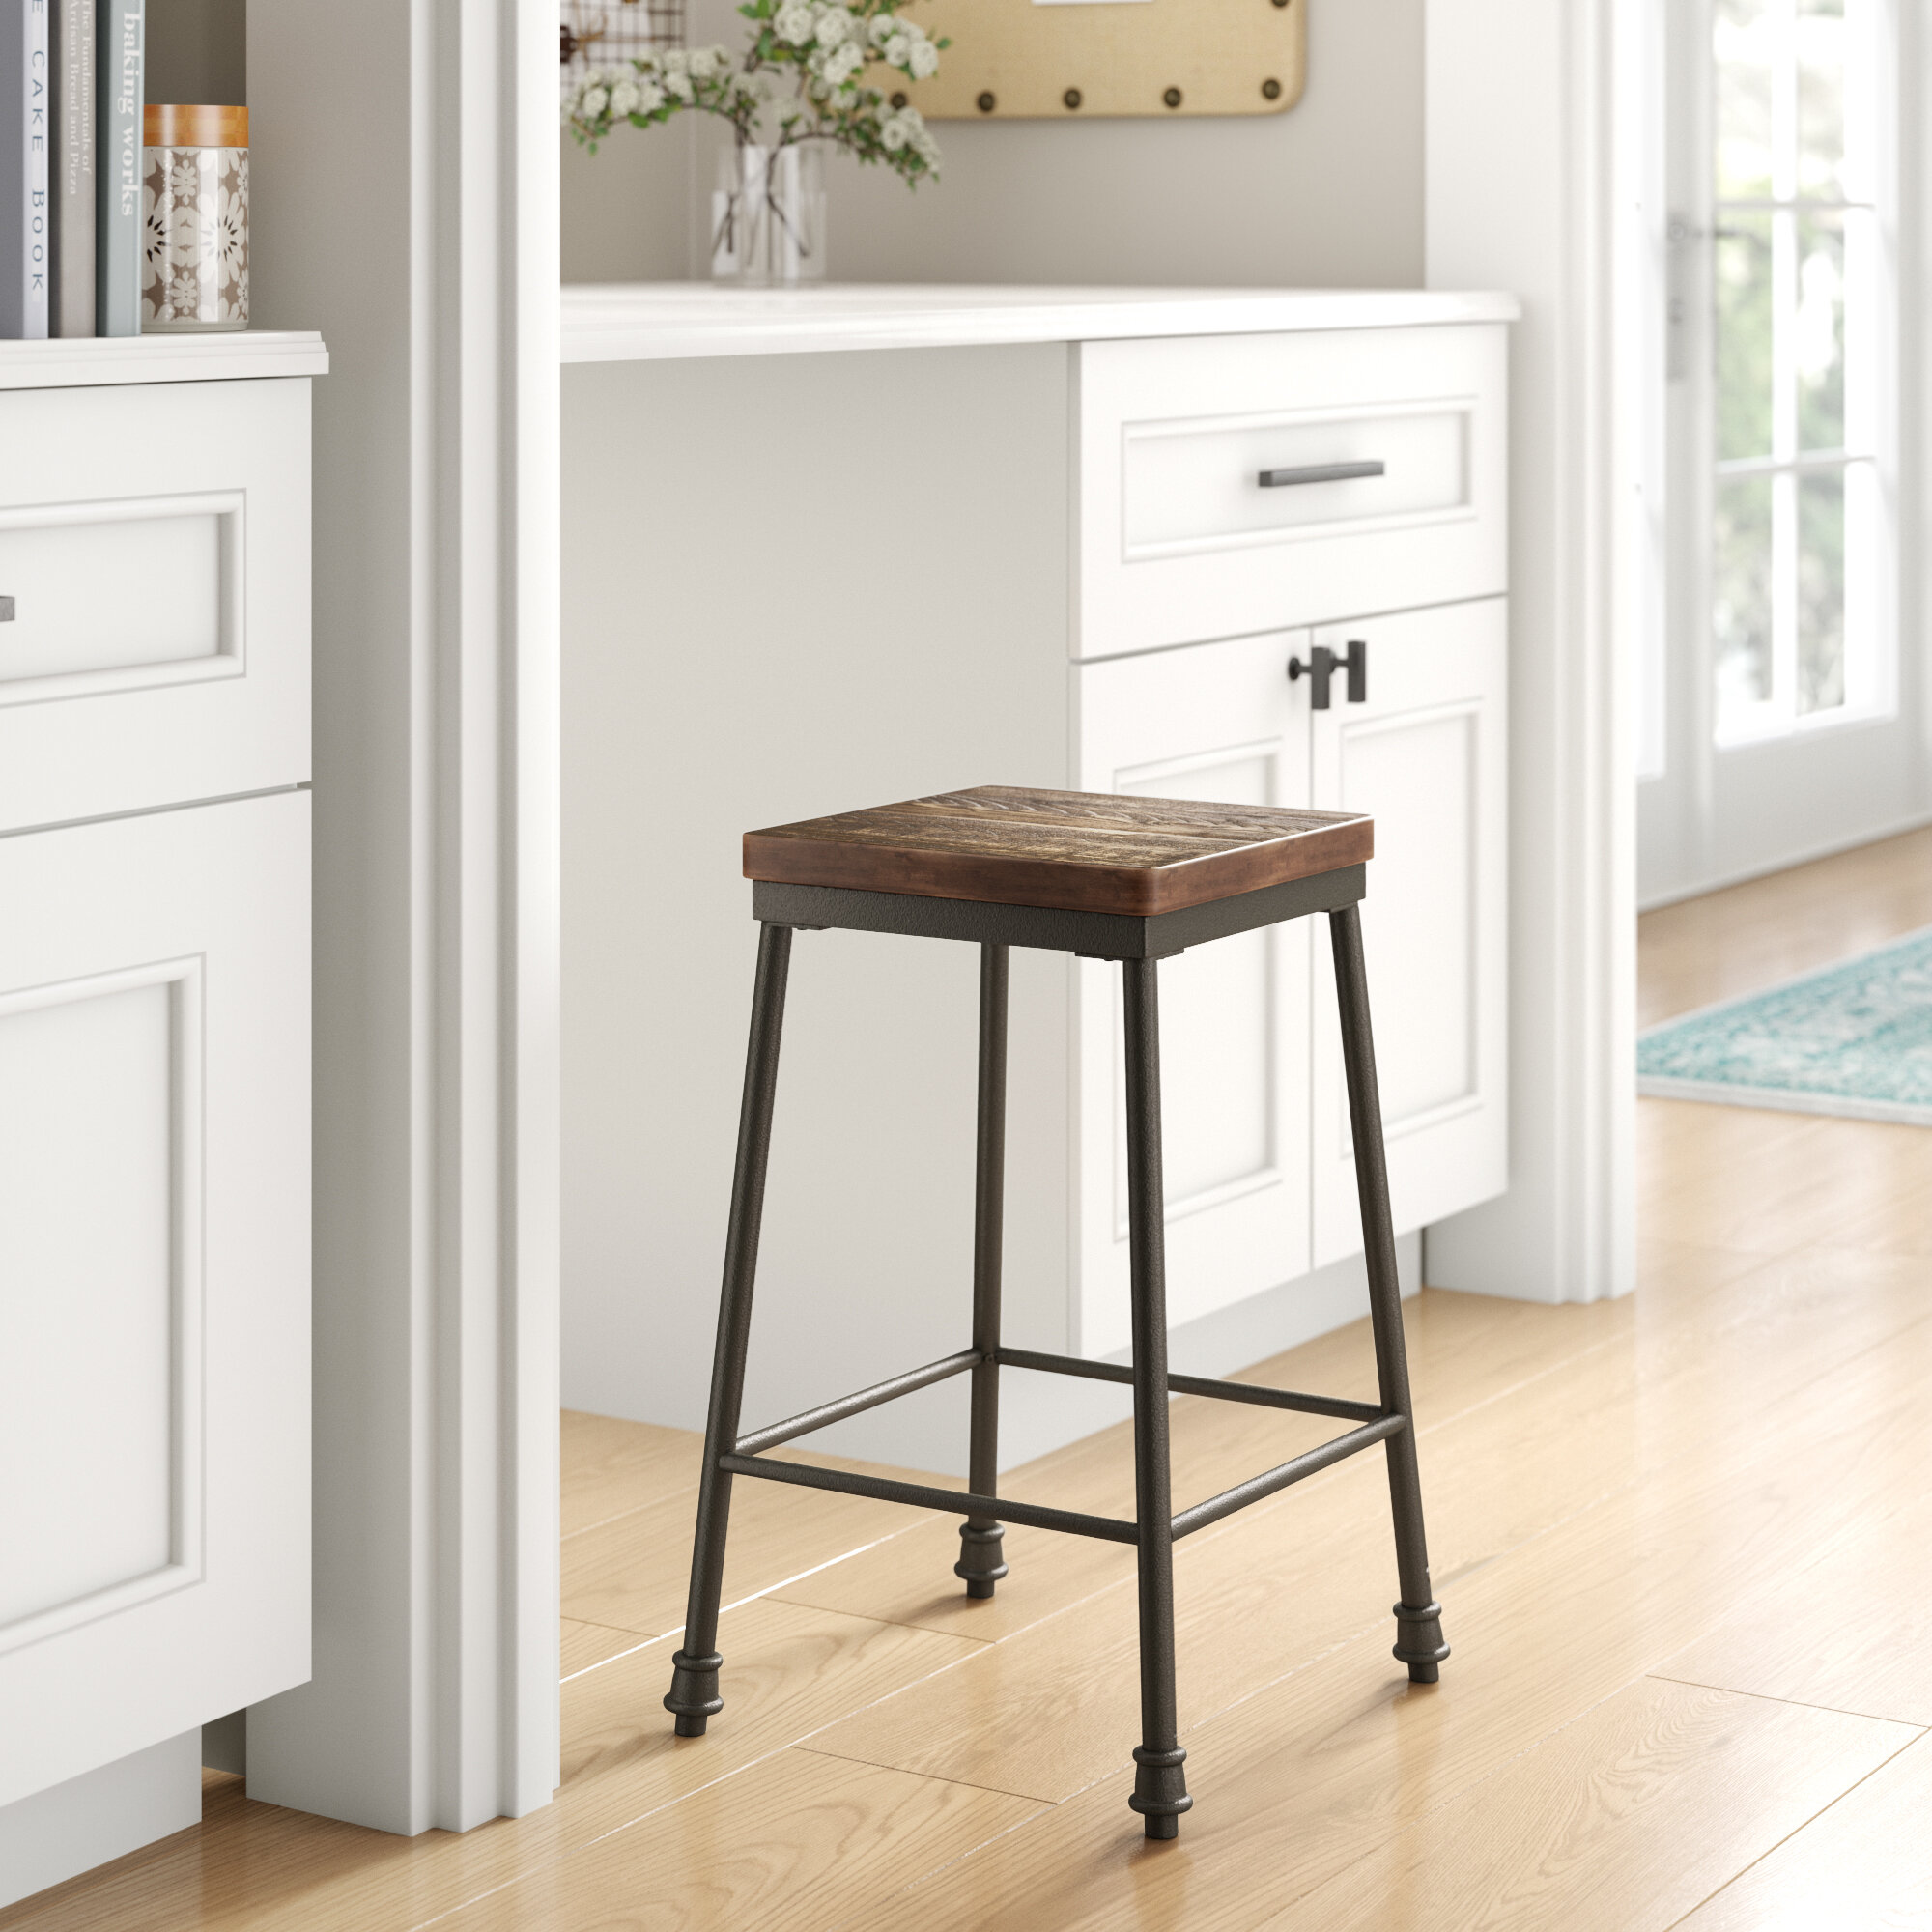 Birch lane castille counter height stool reviews birch lane